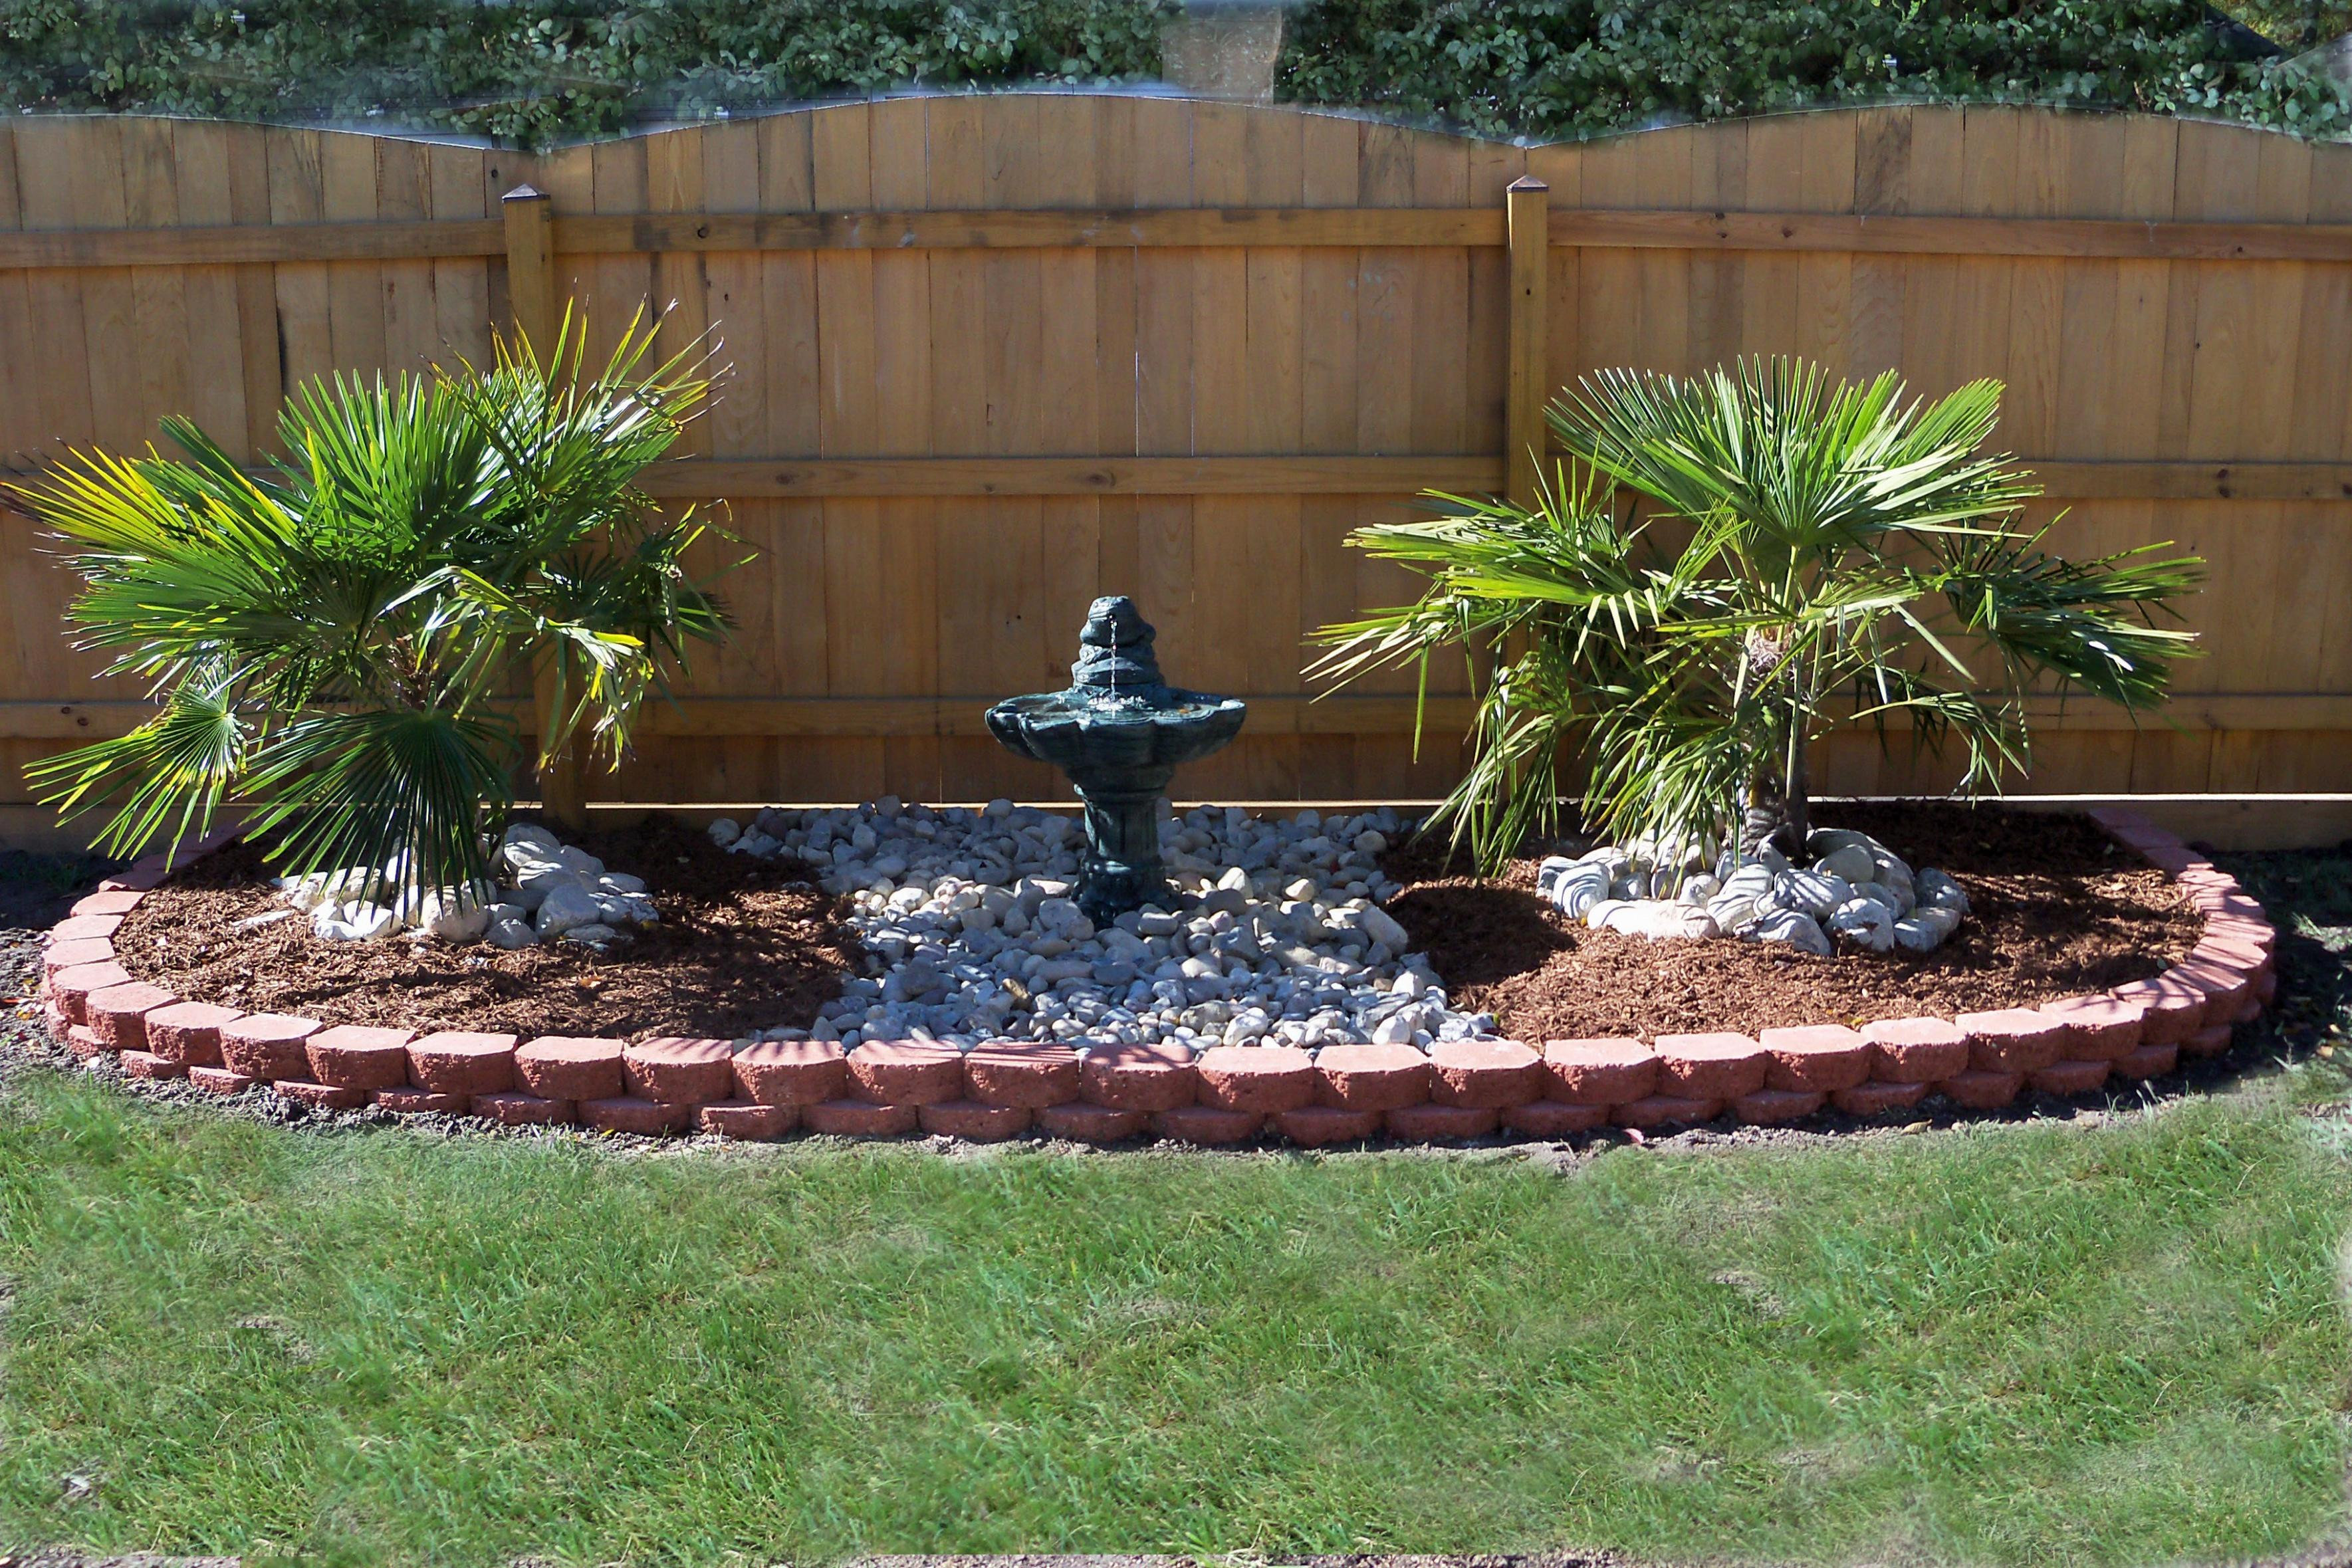 vase water fountain outdoor of diy fountain ideas lovely diy waterfall pond landscape water intended for garden ideas diy fountain ideas inspirational top 29 stylish landscape fountain ideas apply it right now